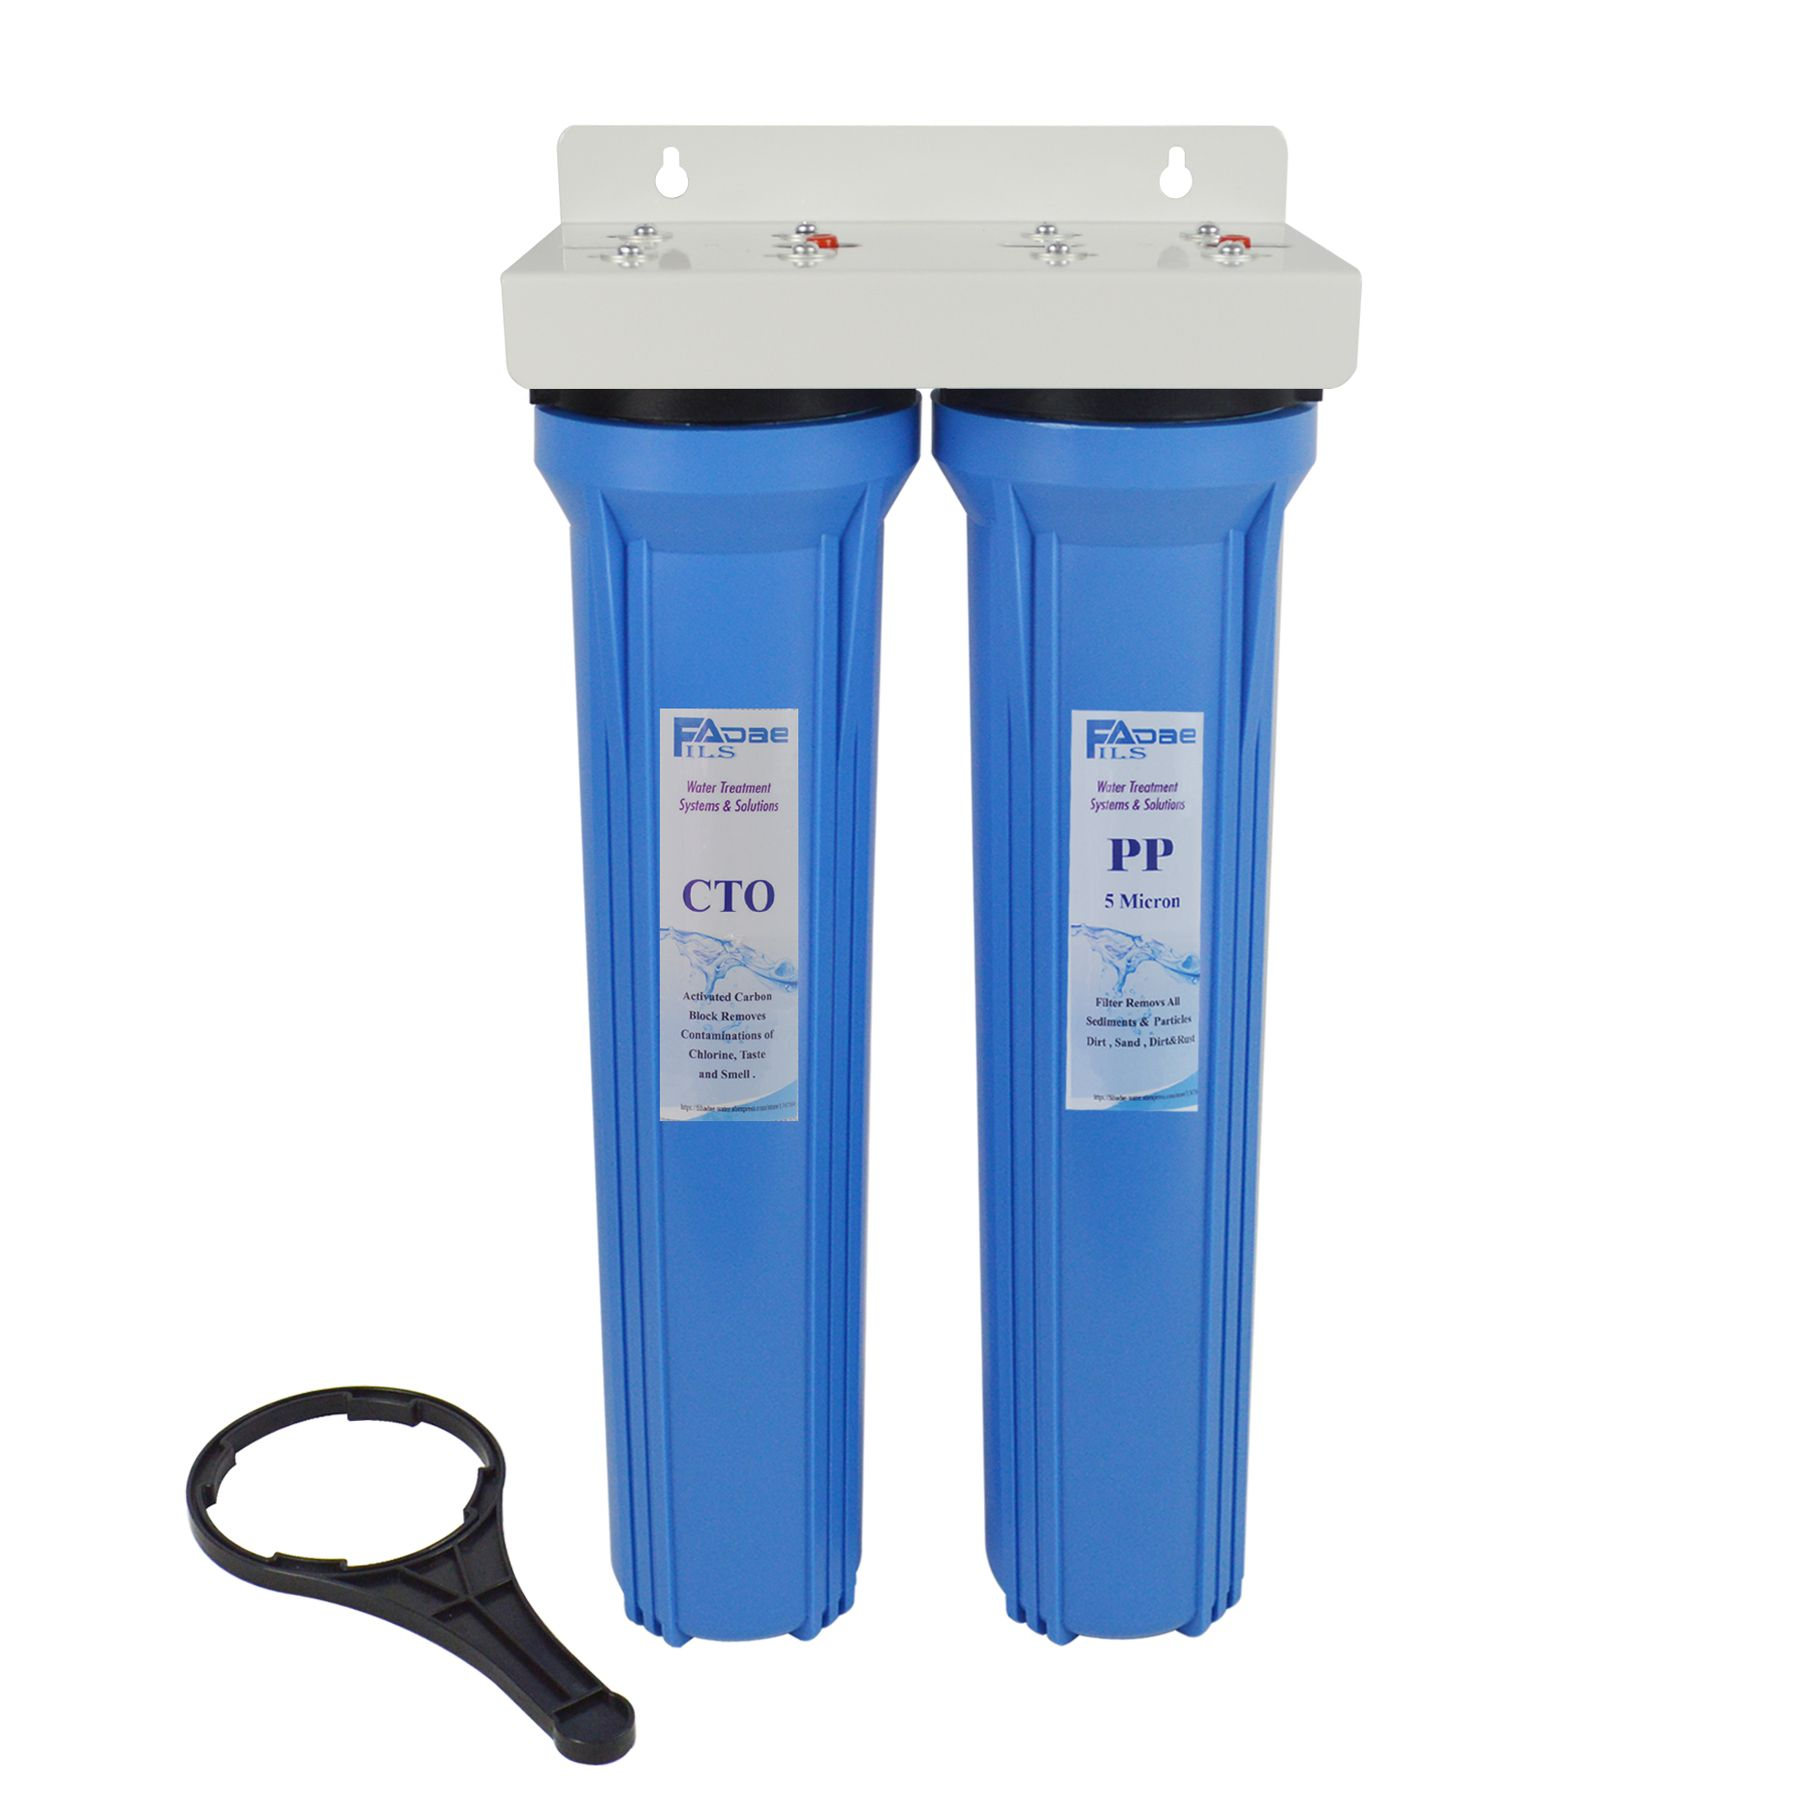 Whole House 2 Stage Water Filter System Blue Color With 20 X2 5 Pp Sediment And Premium Carbon Block Filter 3 4 In Water Filters System Filters Water Filter